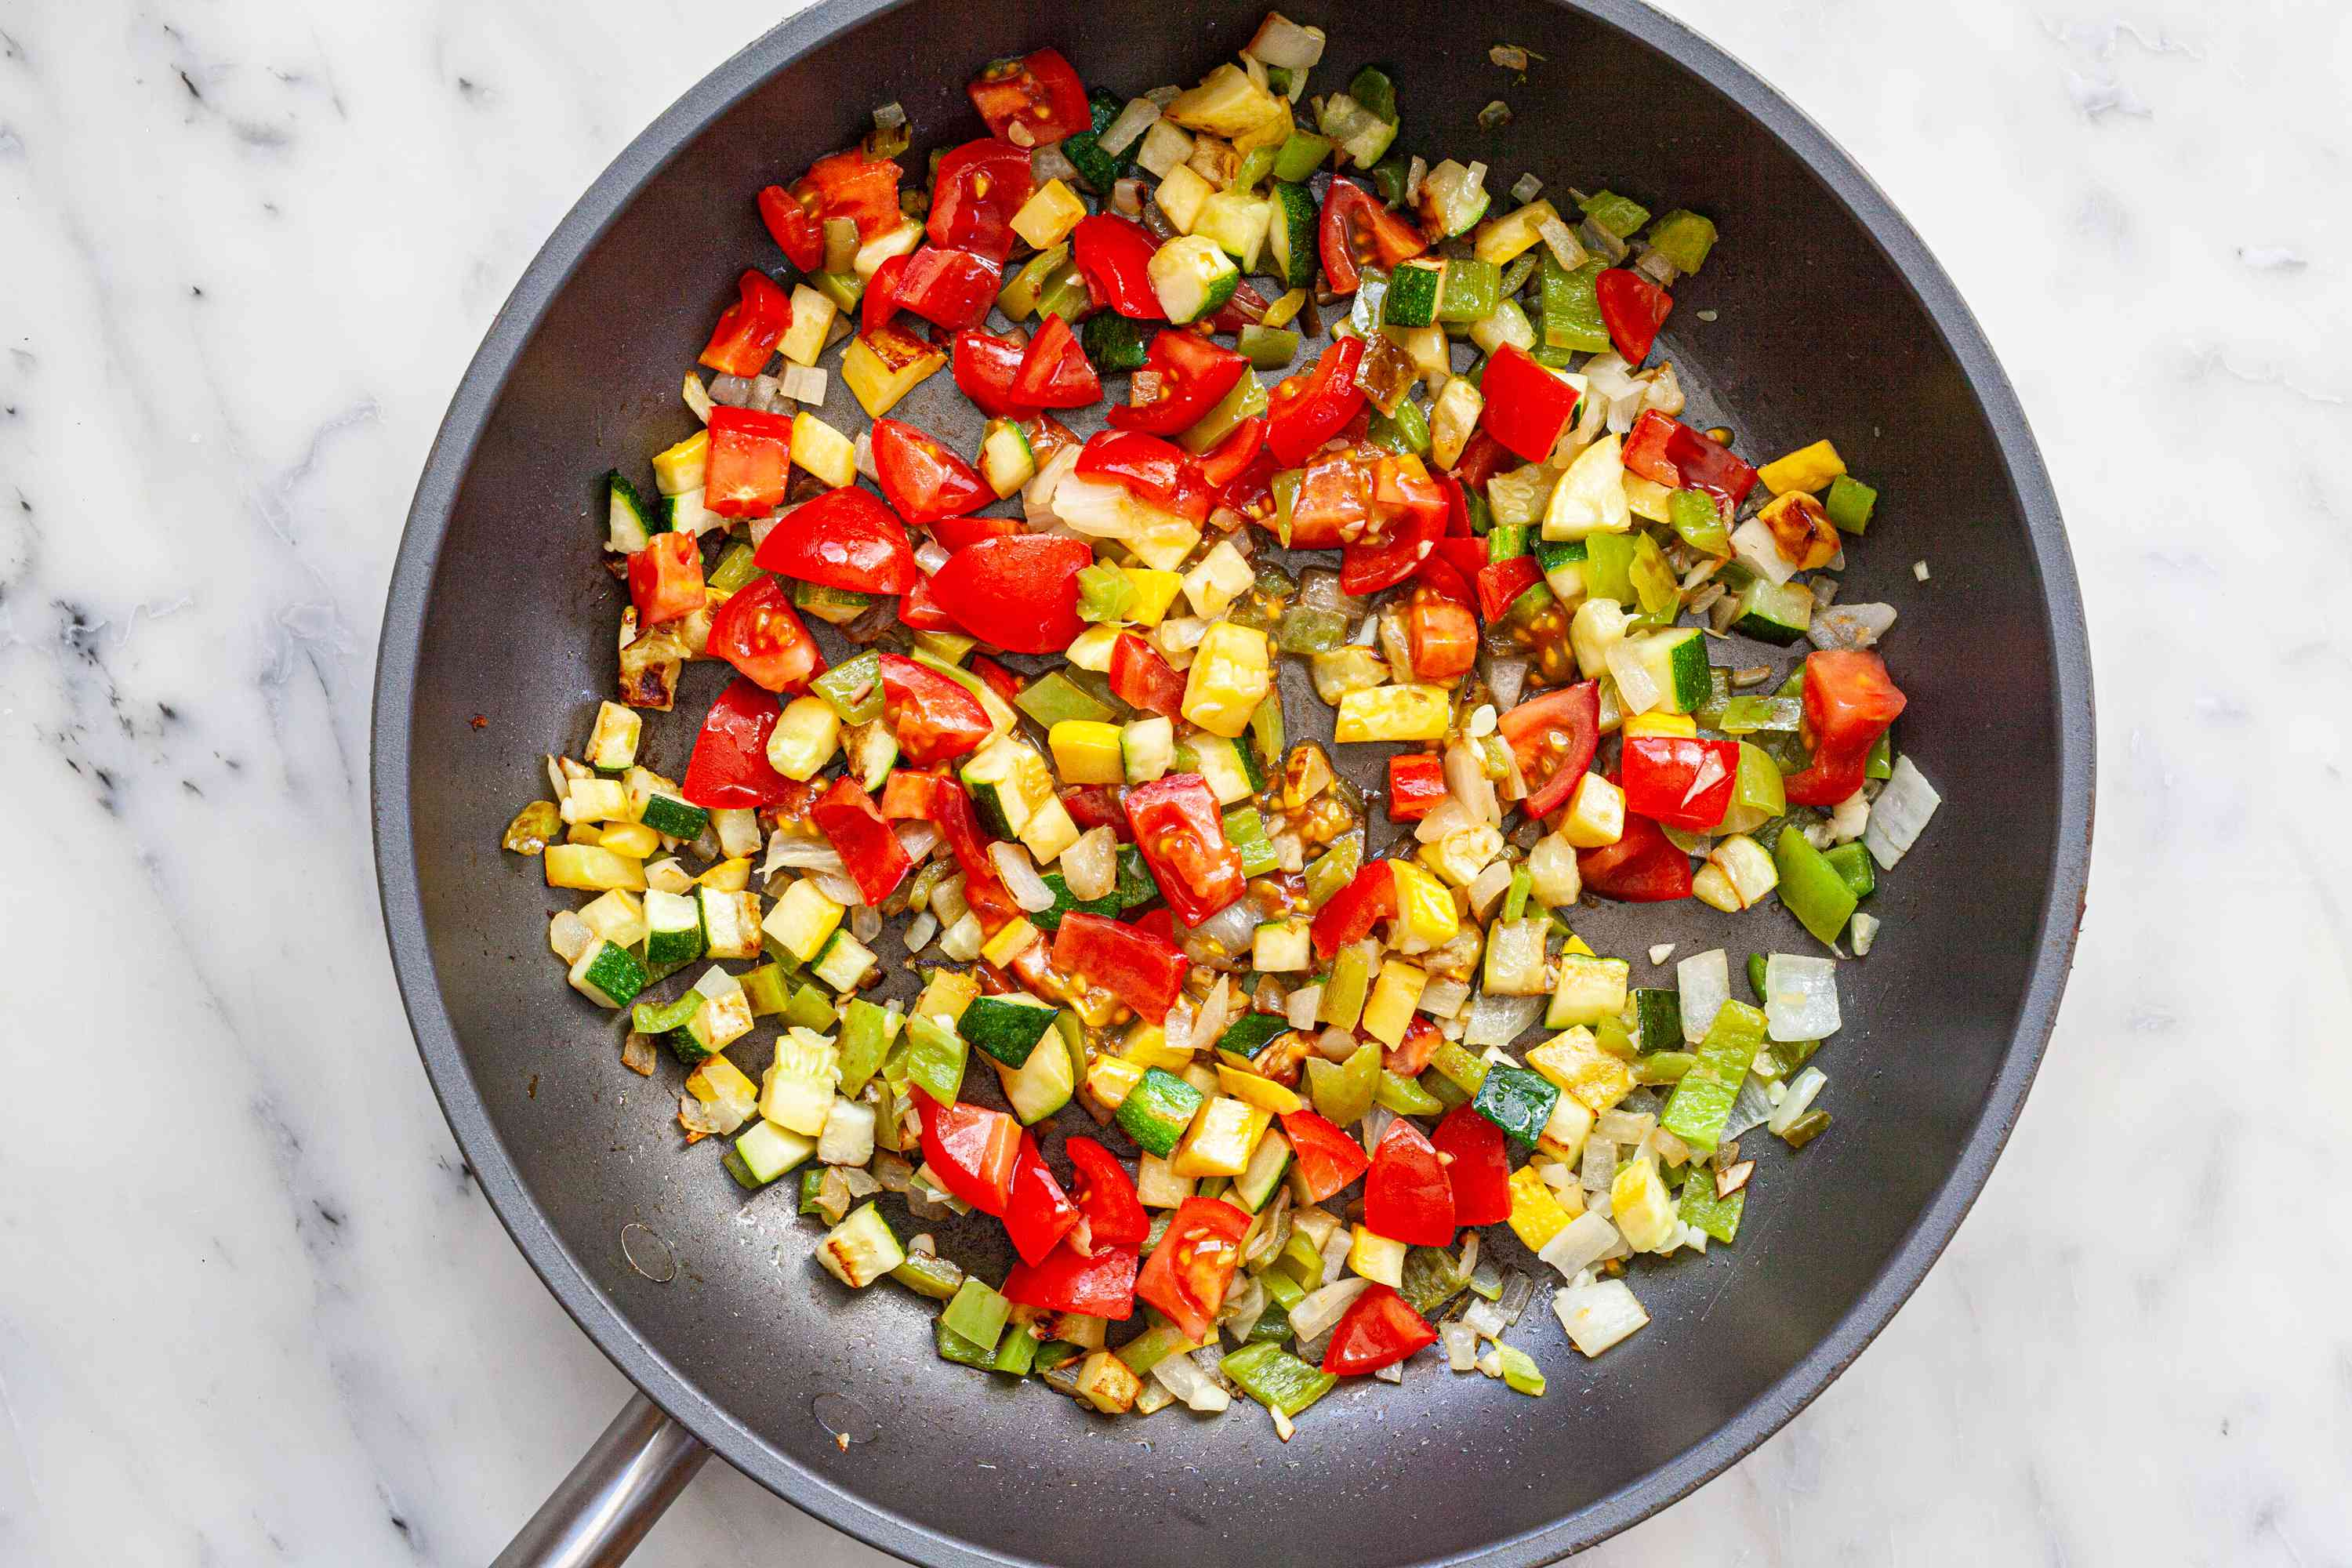 Diced vegetables in a skillet to show how to make tacos.